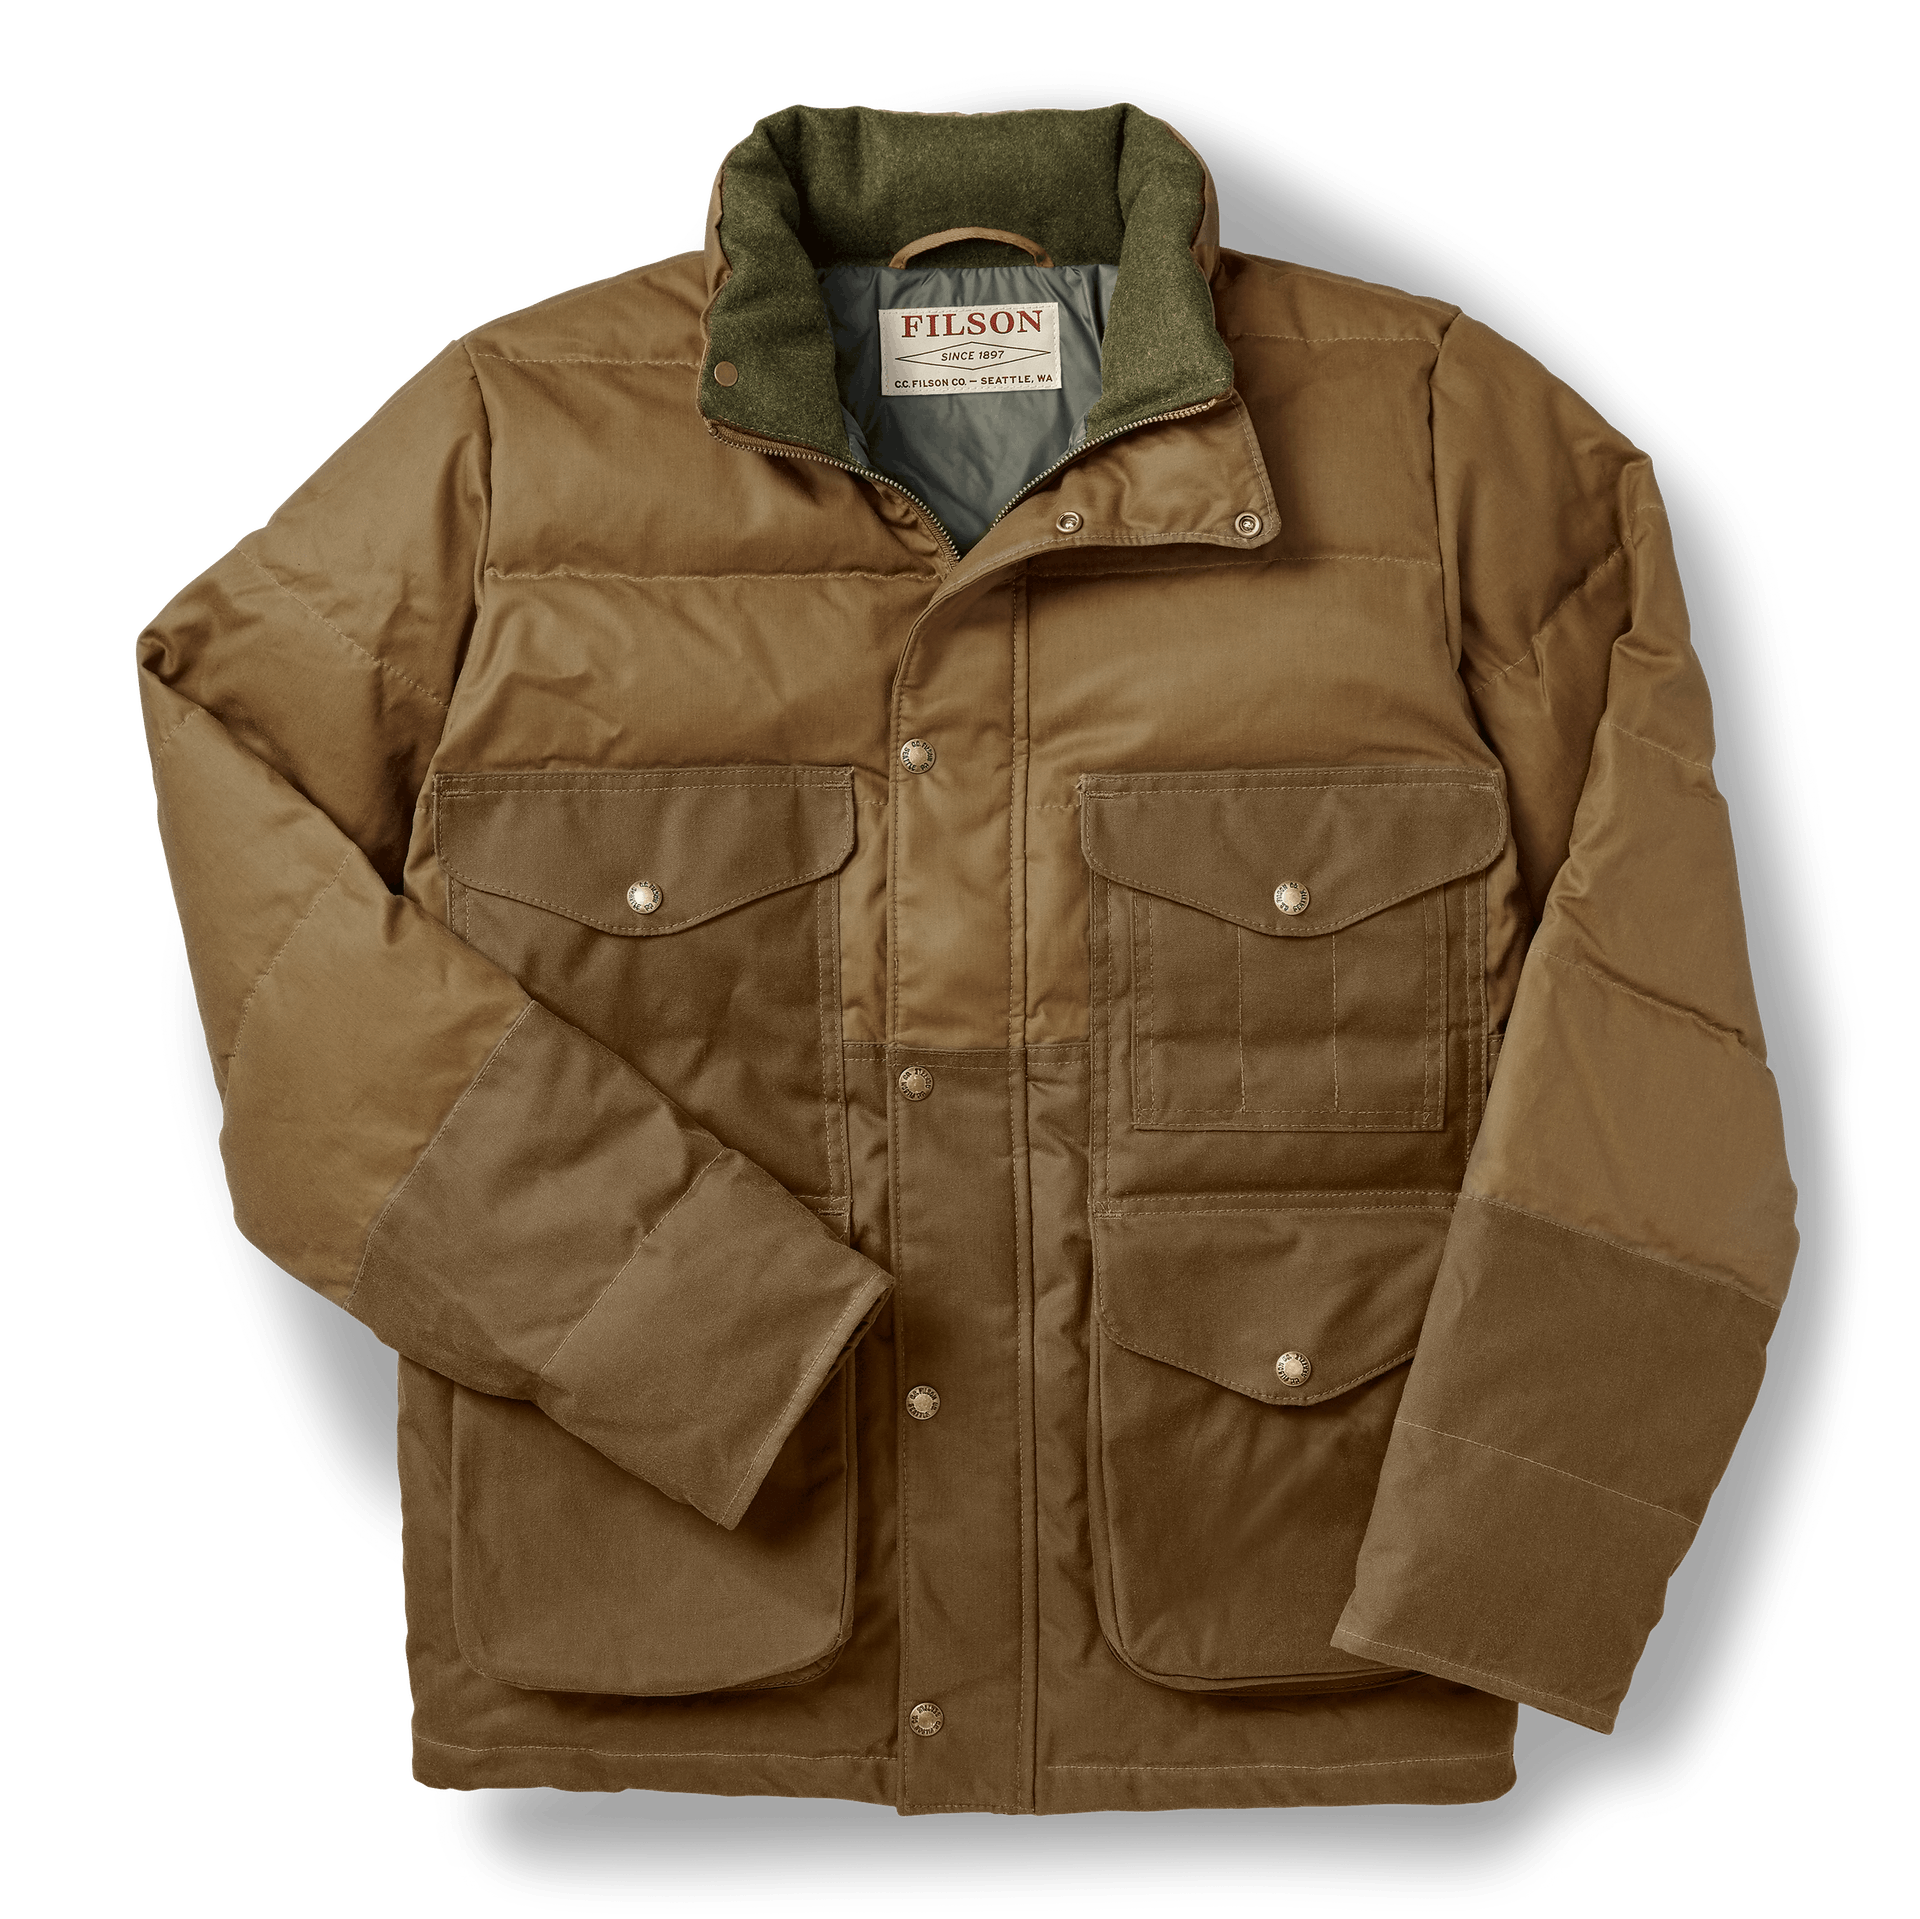 Filson Down Cruiser Jackets